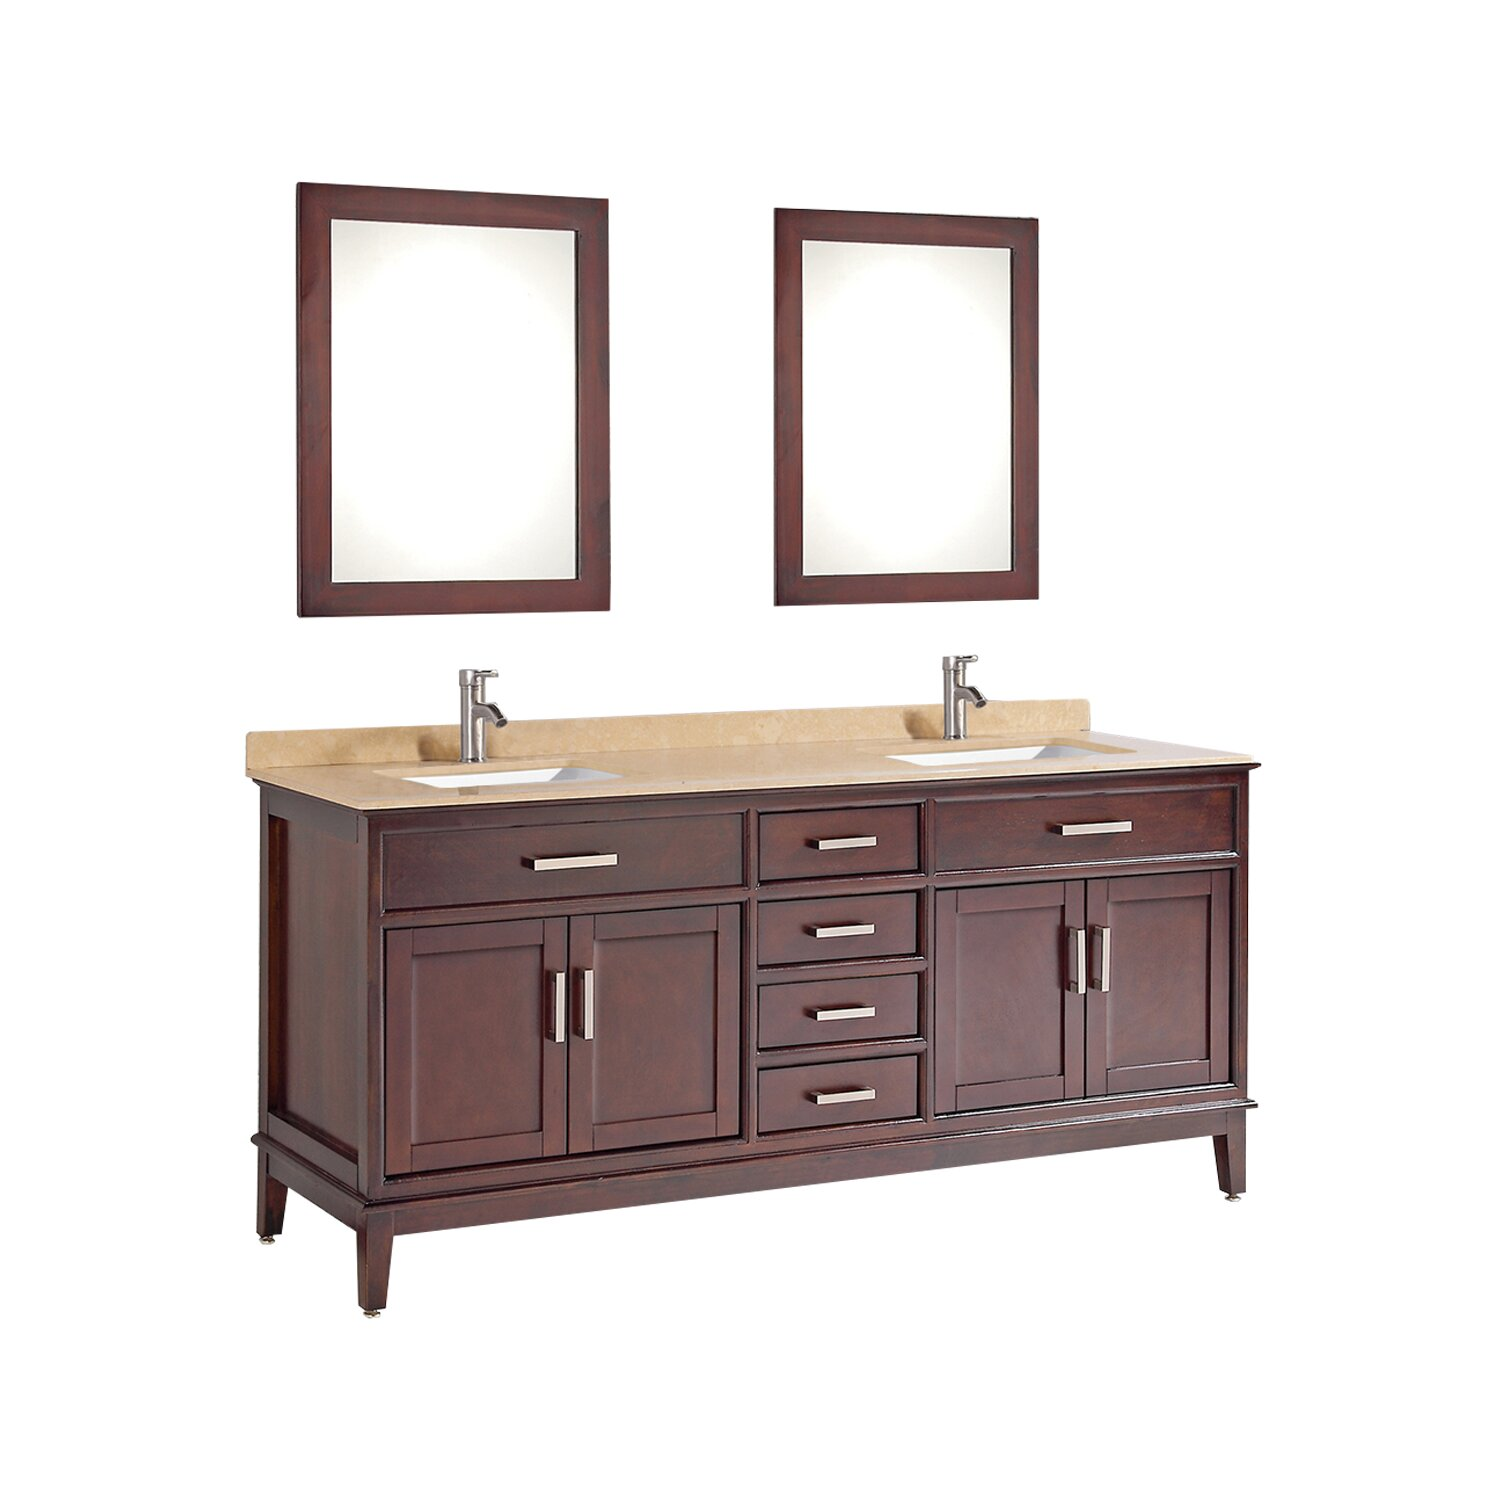 Mtdvanities sierra 59 8 double bathroom vanity set with for Restroom vanity